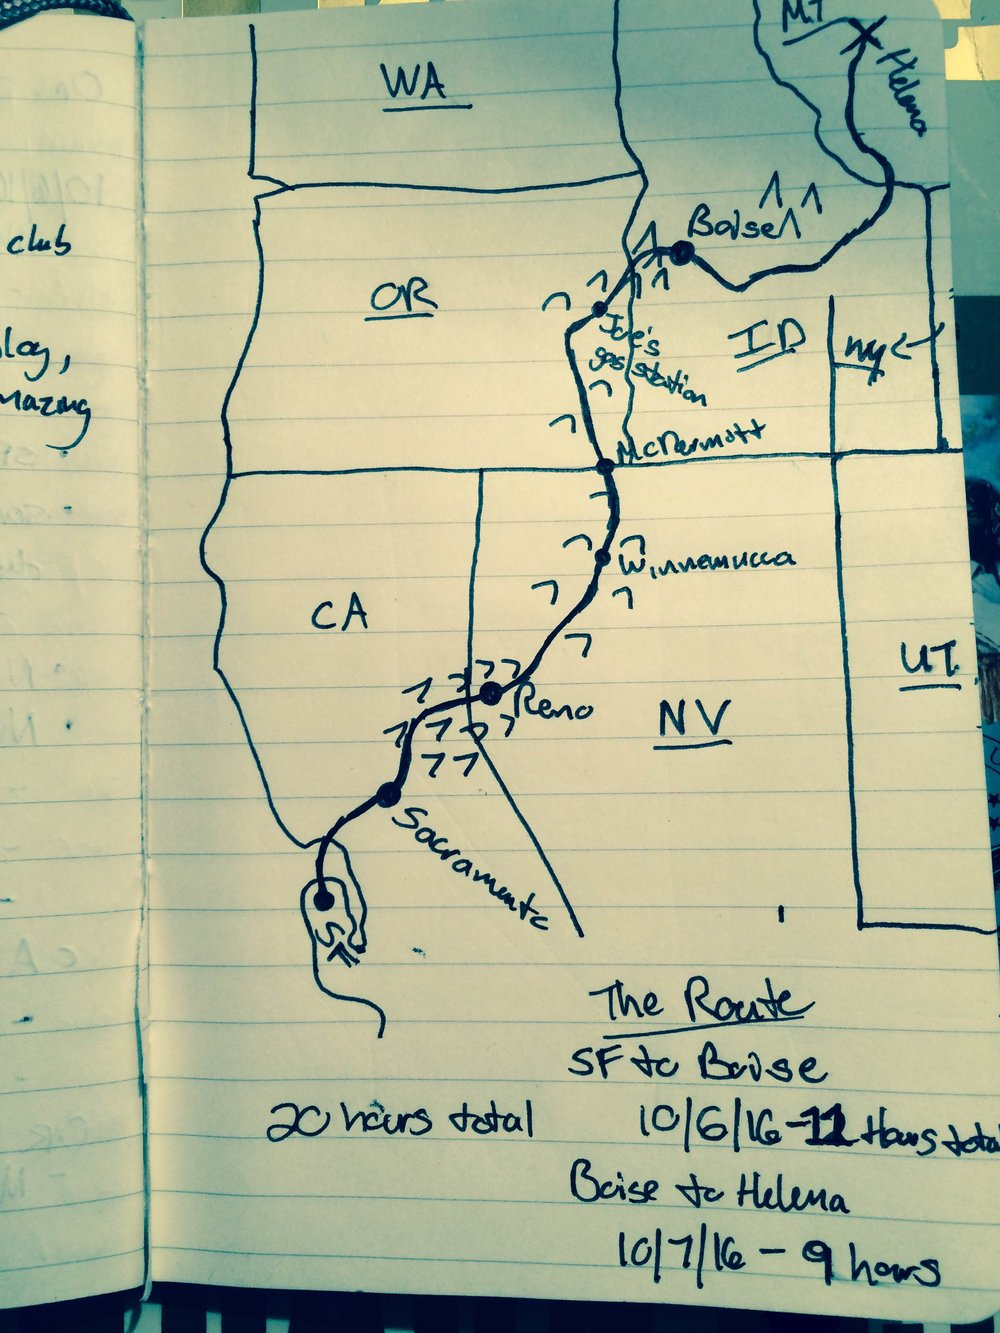 My route, drawn (inaccurately) to scale.